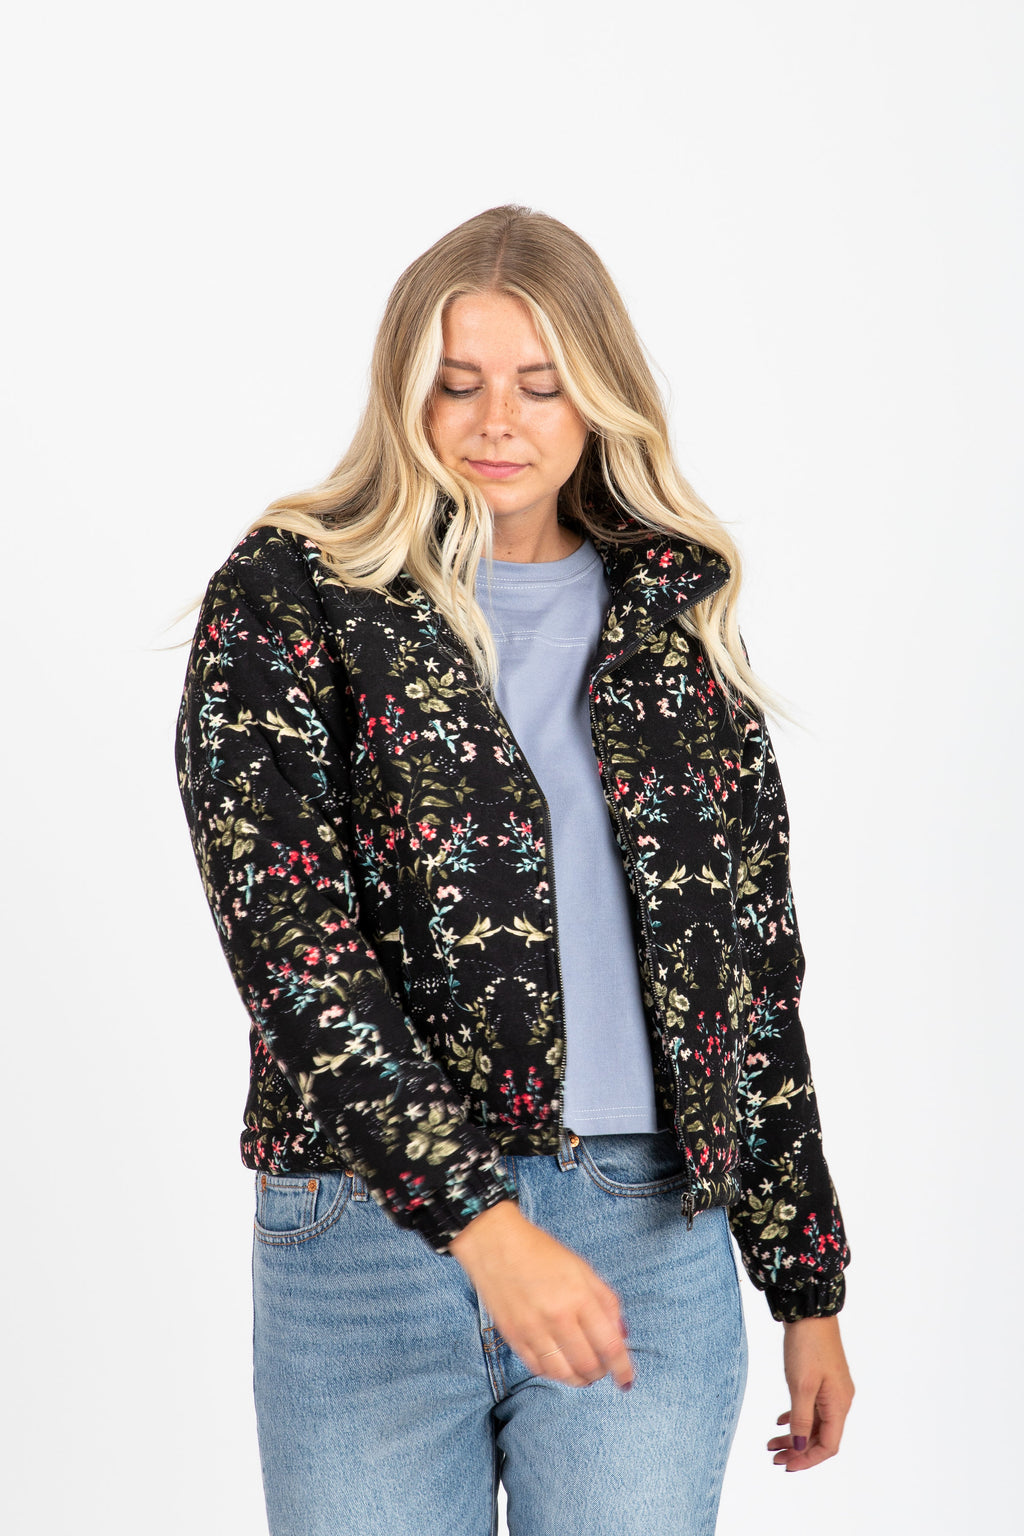 The Apollo Floral Bomber Jacket in Black